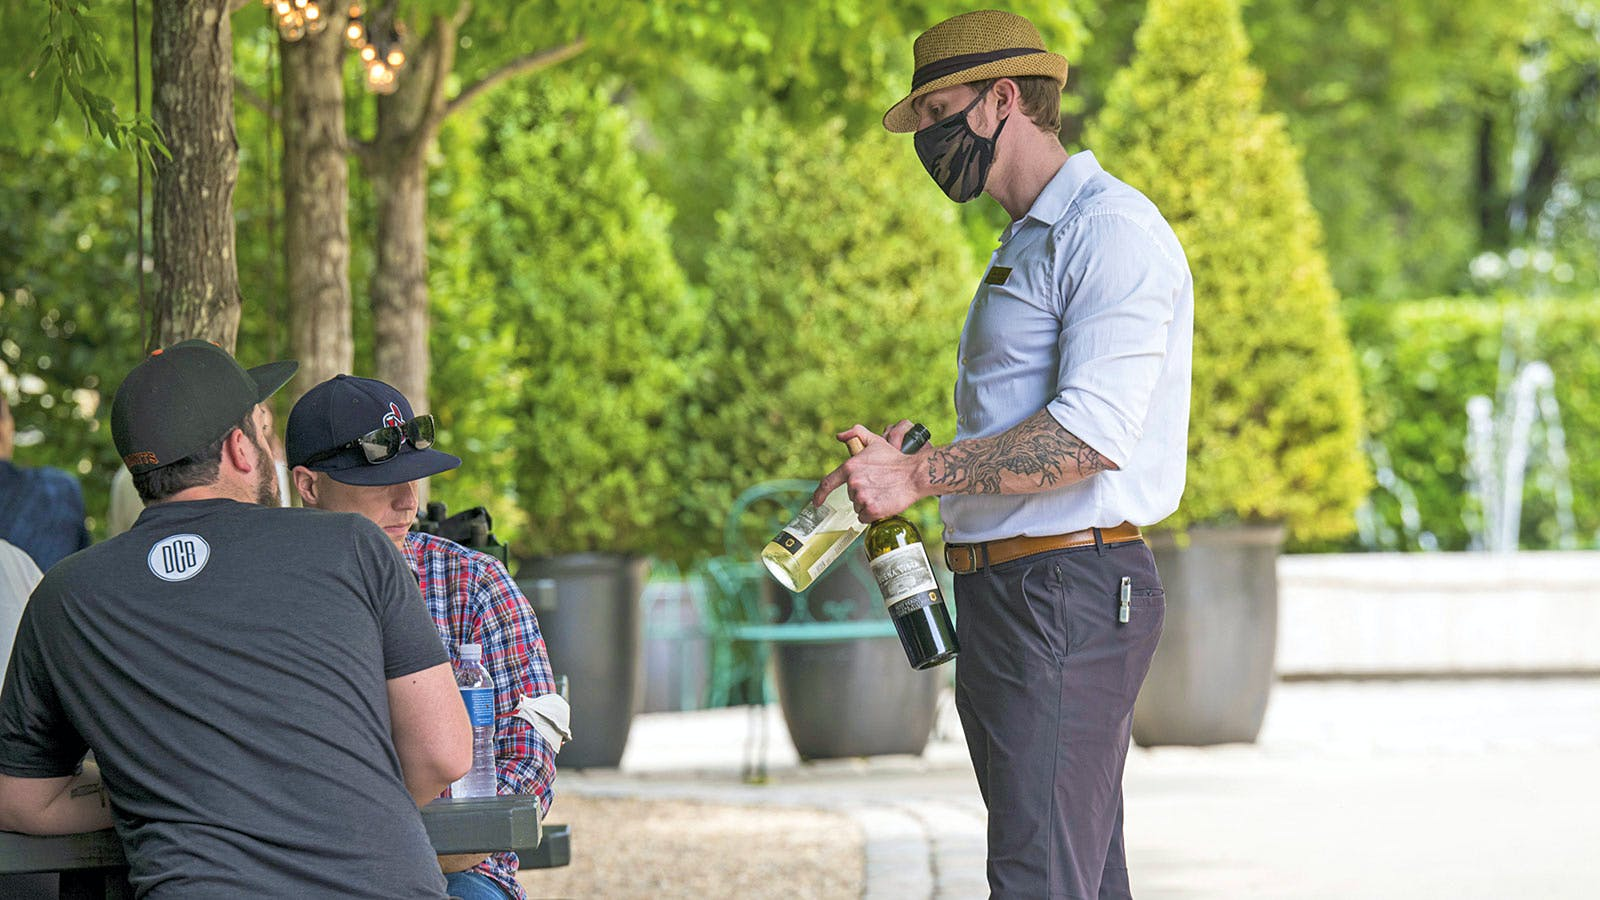 SPECIAL REPORT: COVID-19: U.S. Wineries Reopen ... Slowly